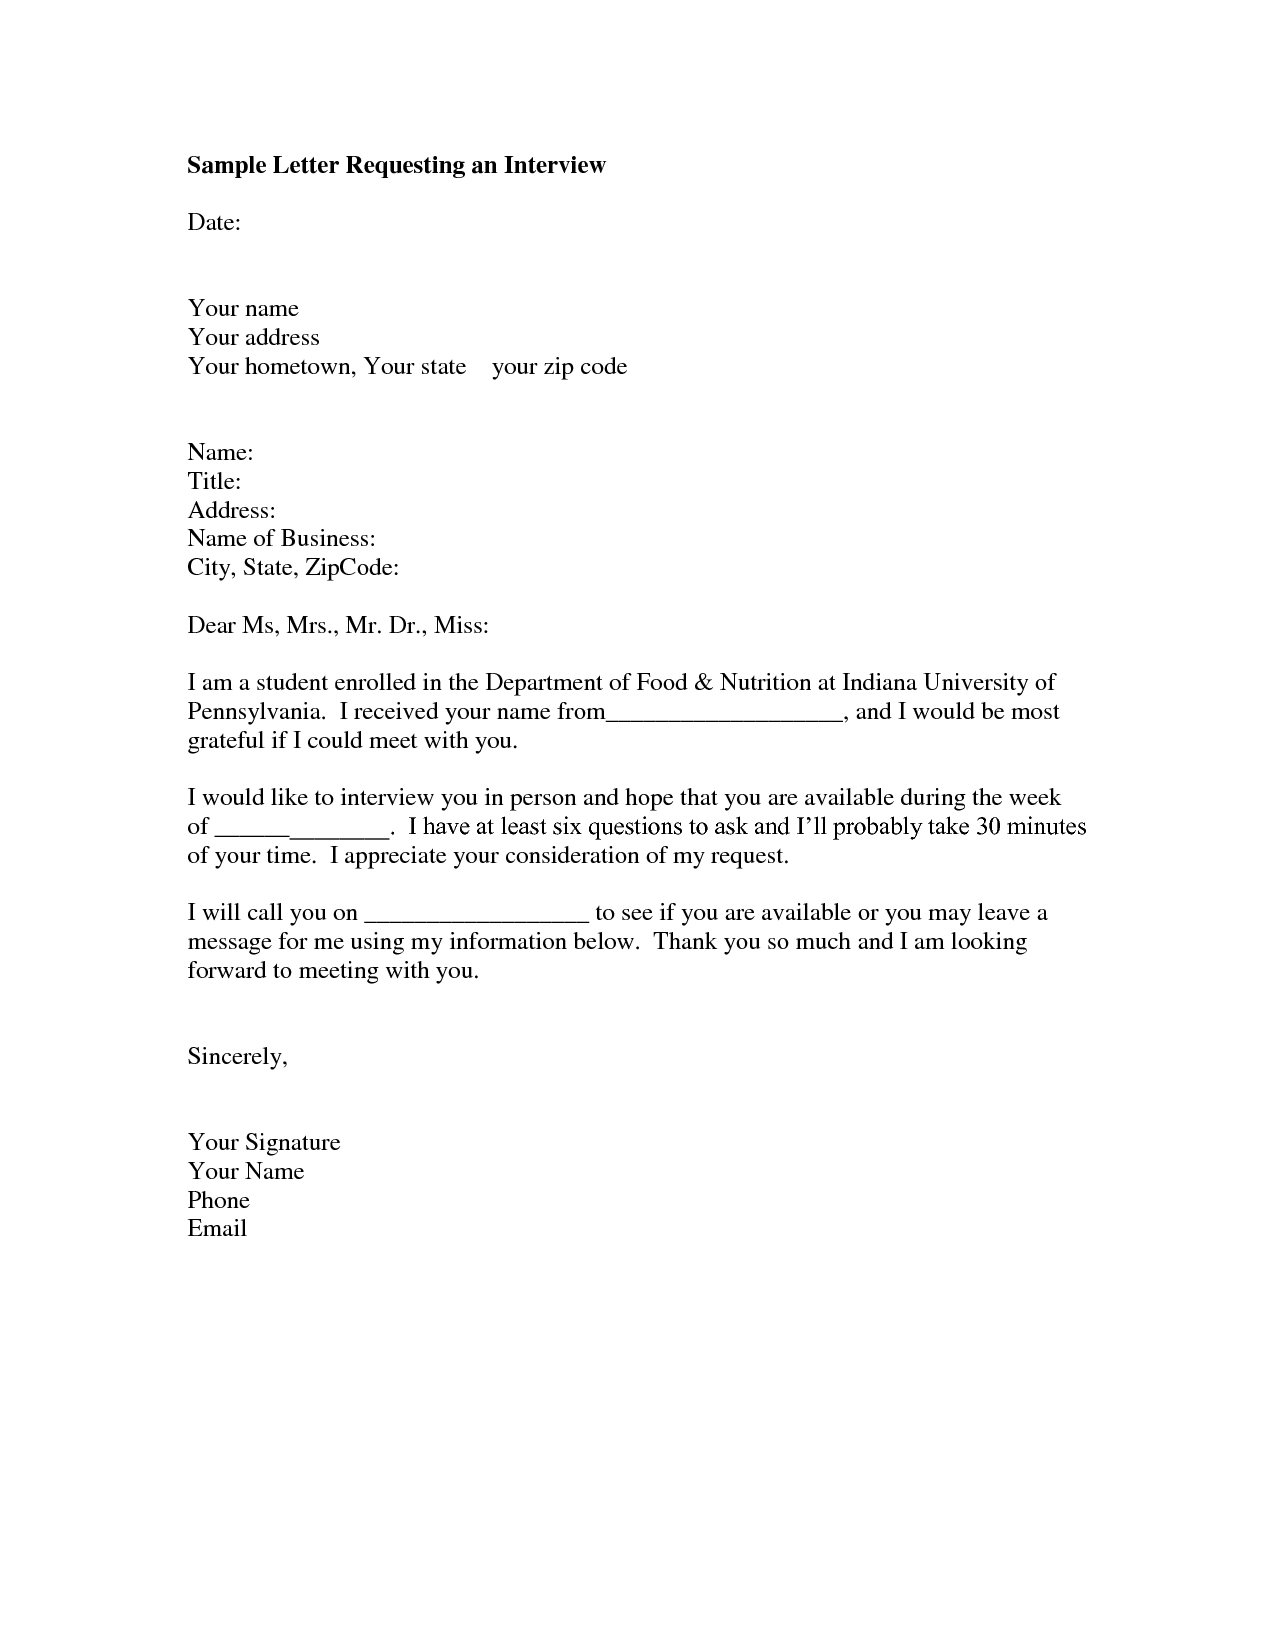 Interview request letter sample format of a letter you can use to interview request letter sample format of a letter you can use to request an interview with a prospecitive employer friedricerecipe Images